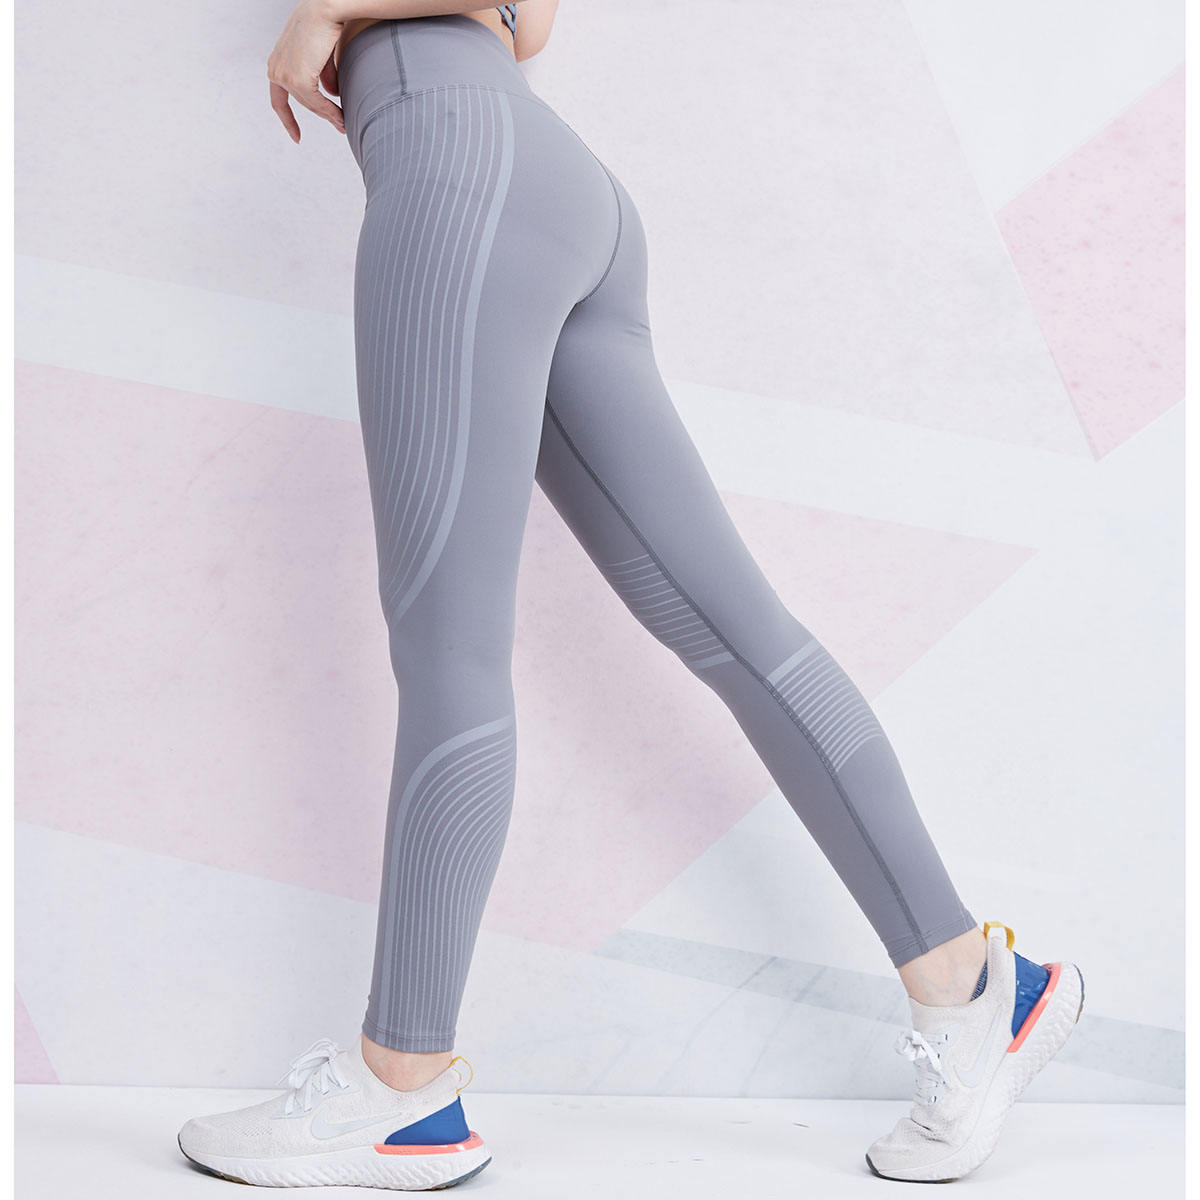 Wholesale Compression Tights Sports Leggings Fitness Nylon GYM Leggins Workout Running Jogging High Waist Womens Skinny Pants